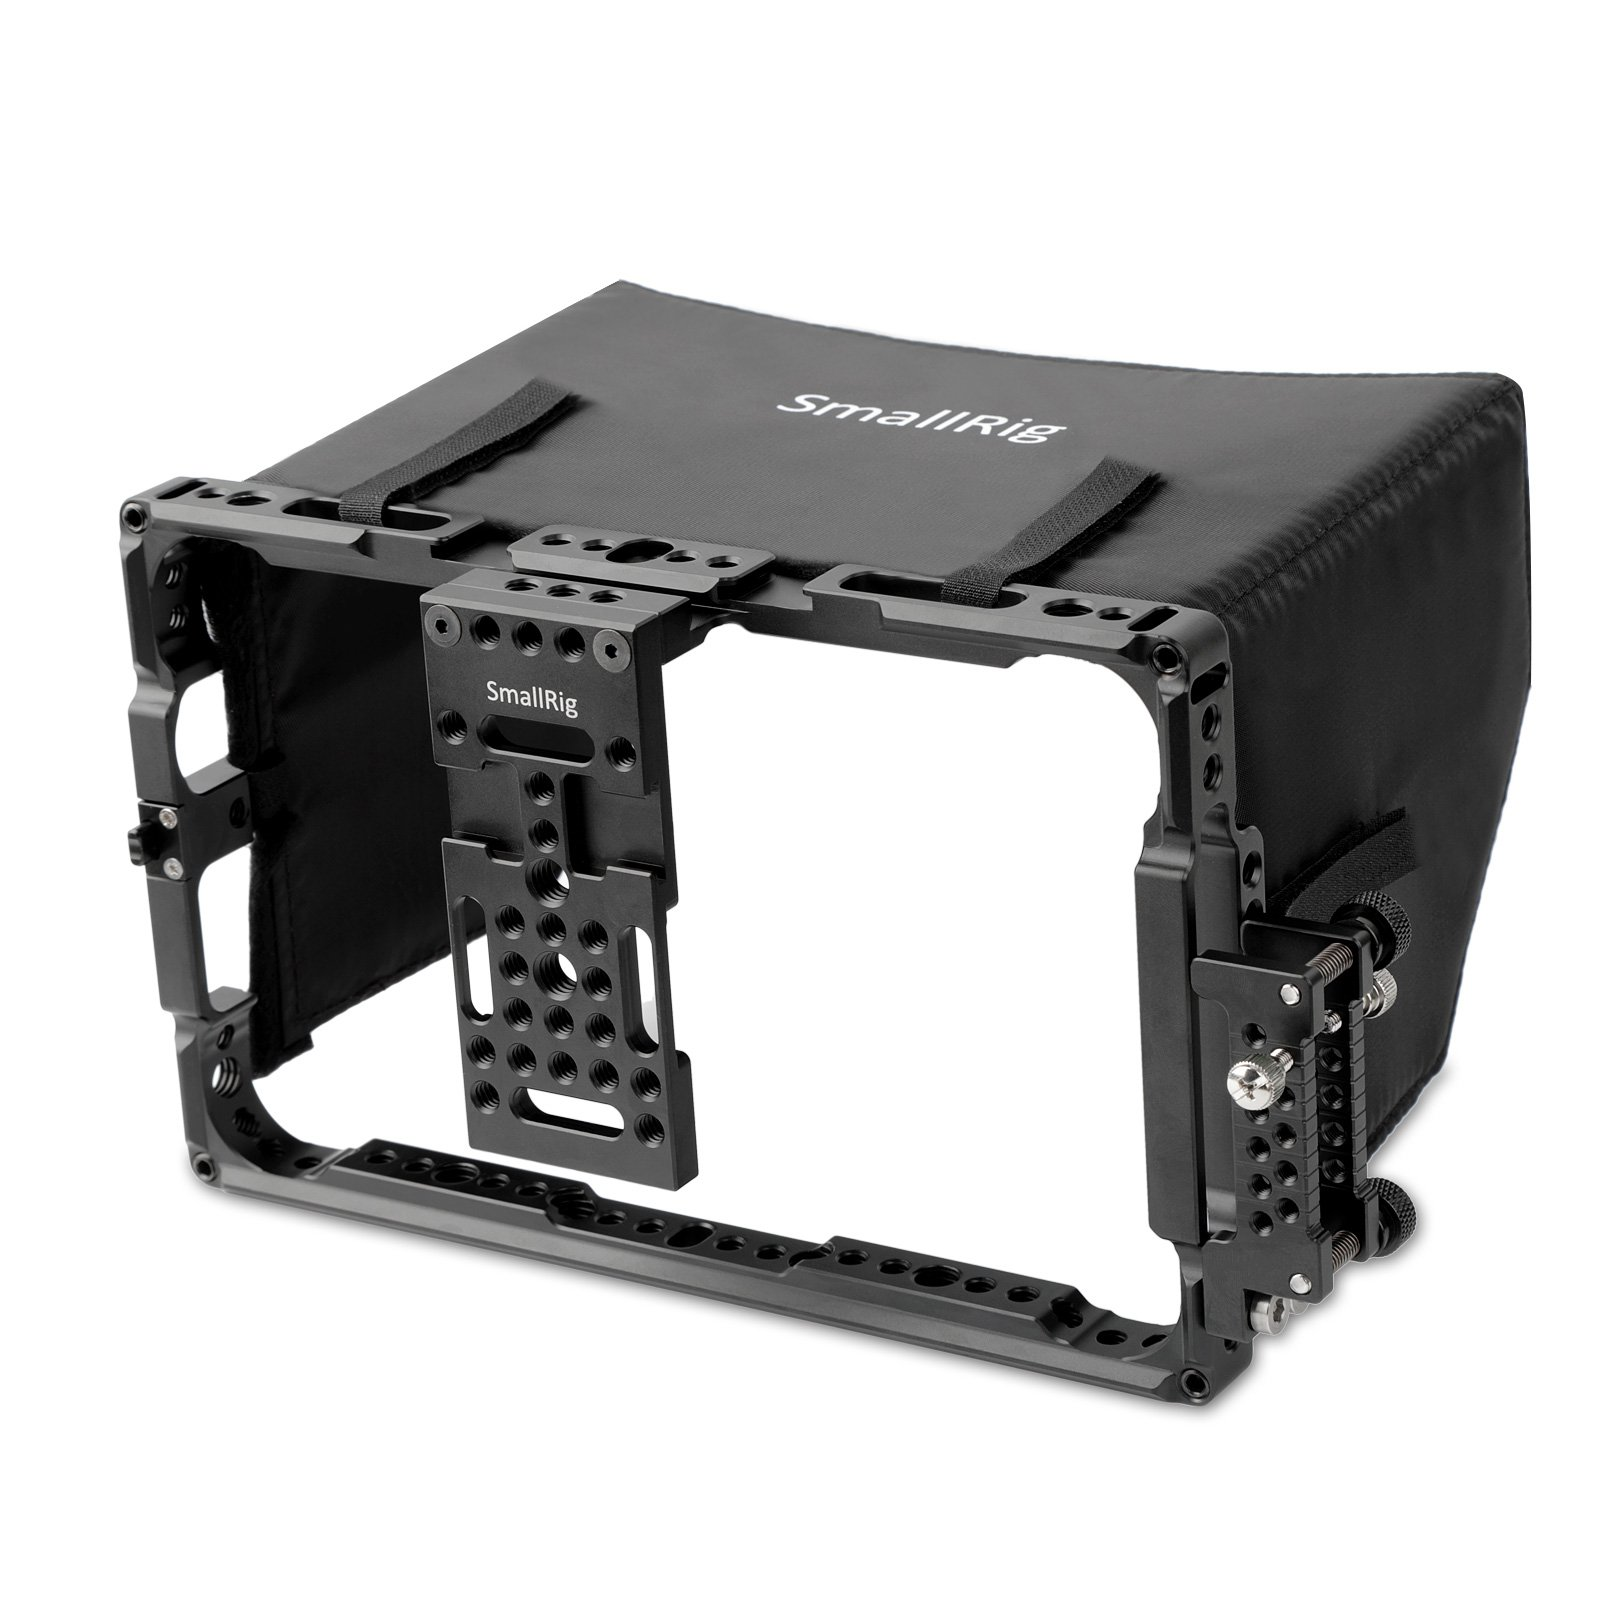 SMALLRIG Monitor Cage with Sunhood for ATOMOS Shogun Inferno, Ninja Inferno, Shogun Flame, Ninja Flame 7 inches Monitors - 2008 by SMALLRIG